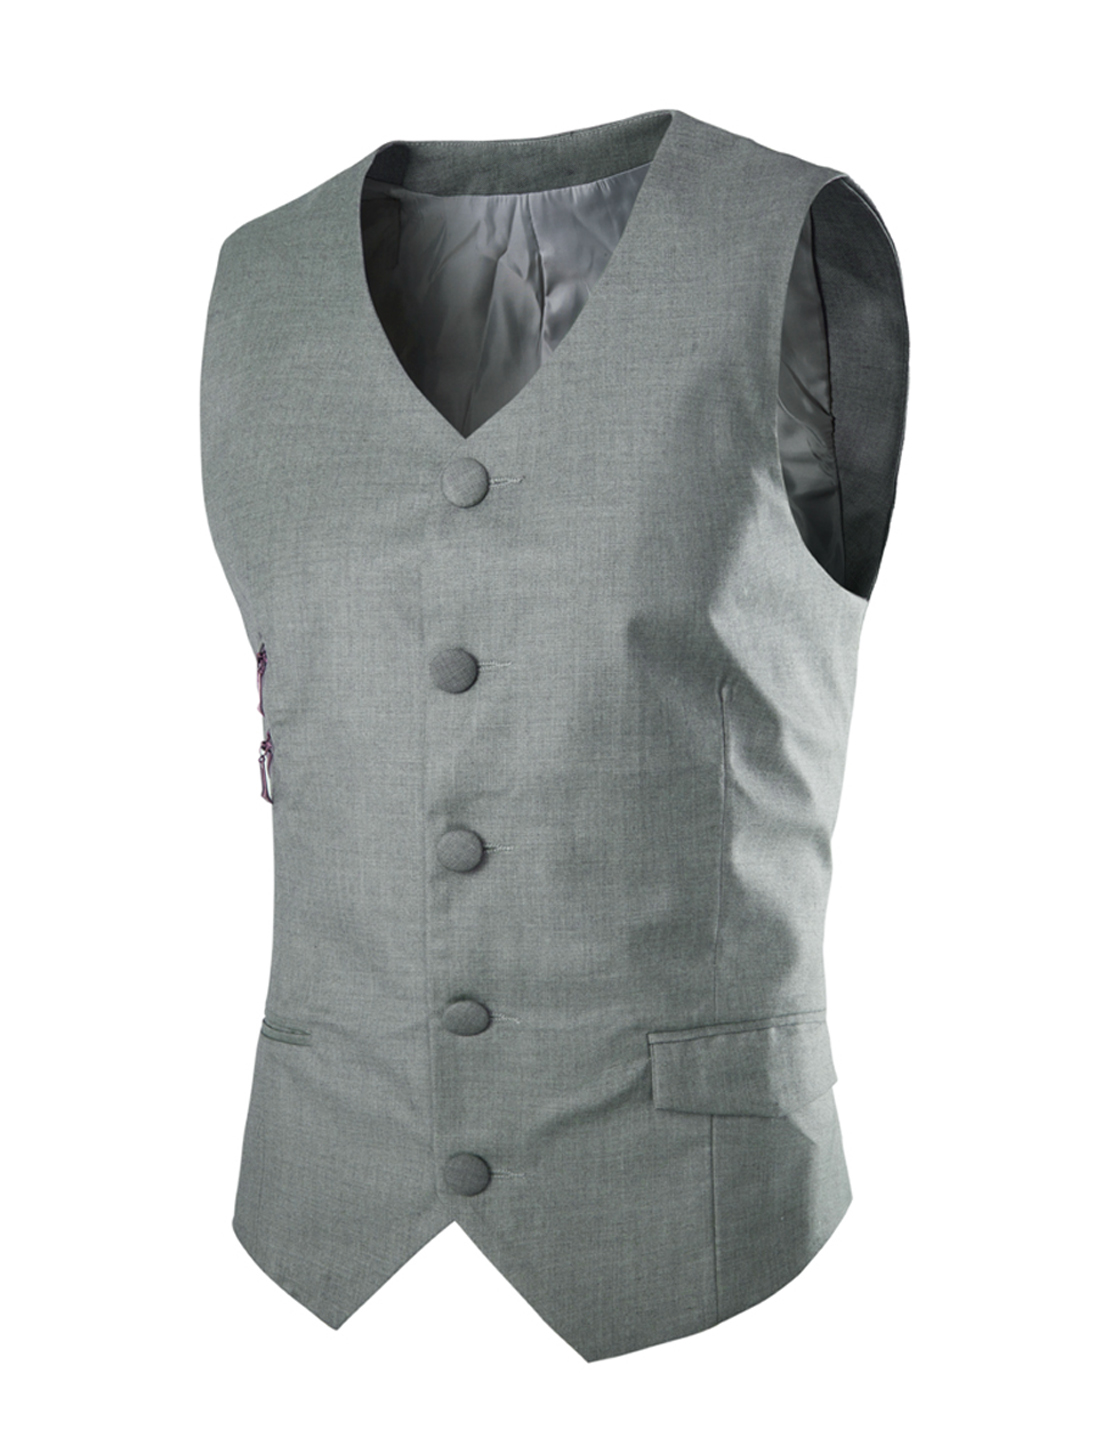 Men Single Breasted Two Welt Pockets Front Casual Vest Light Gray M